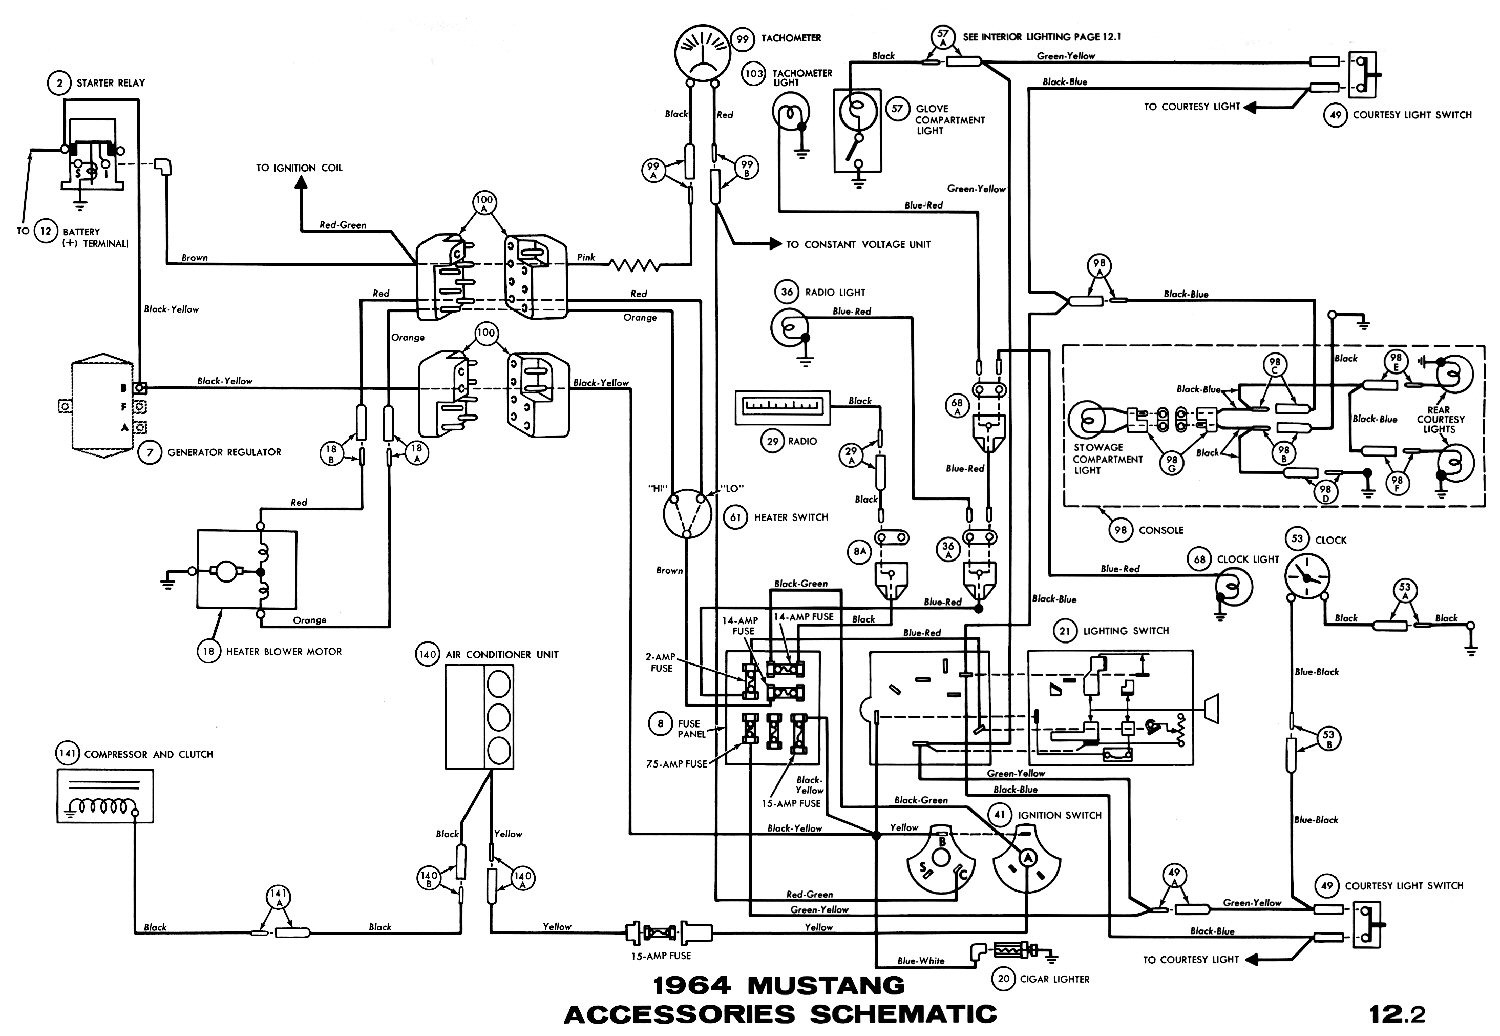 1965 ford mustang wiring diagram 1965 mustang wiring diagram unique 1966 ford mustang wiring diagram a beautiful blurts 9f?resize=806%2C557&ssl=1 ford mustang color codes 1965 zeenla co